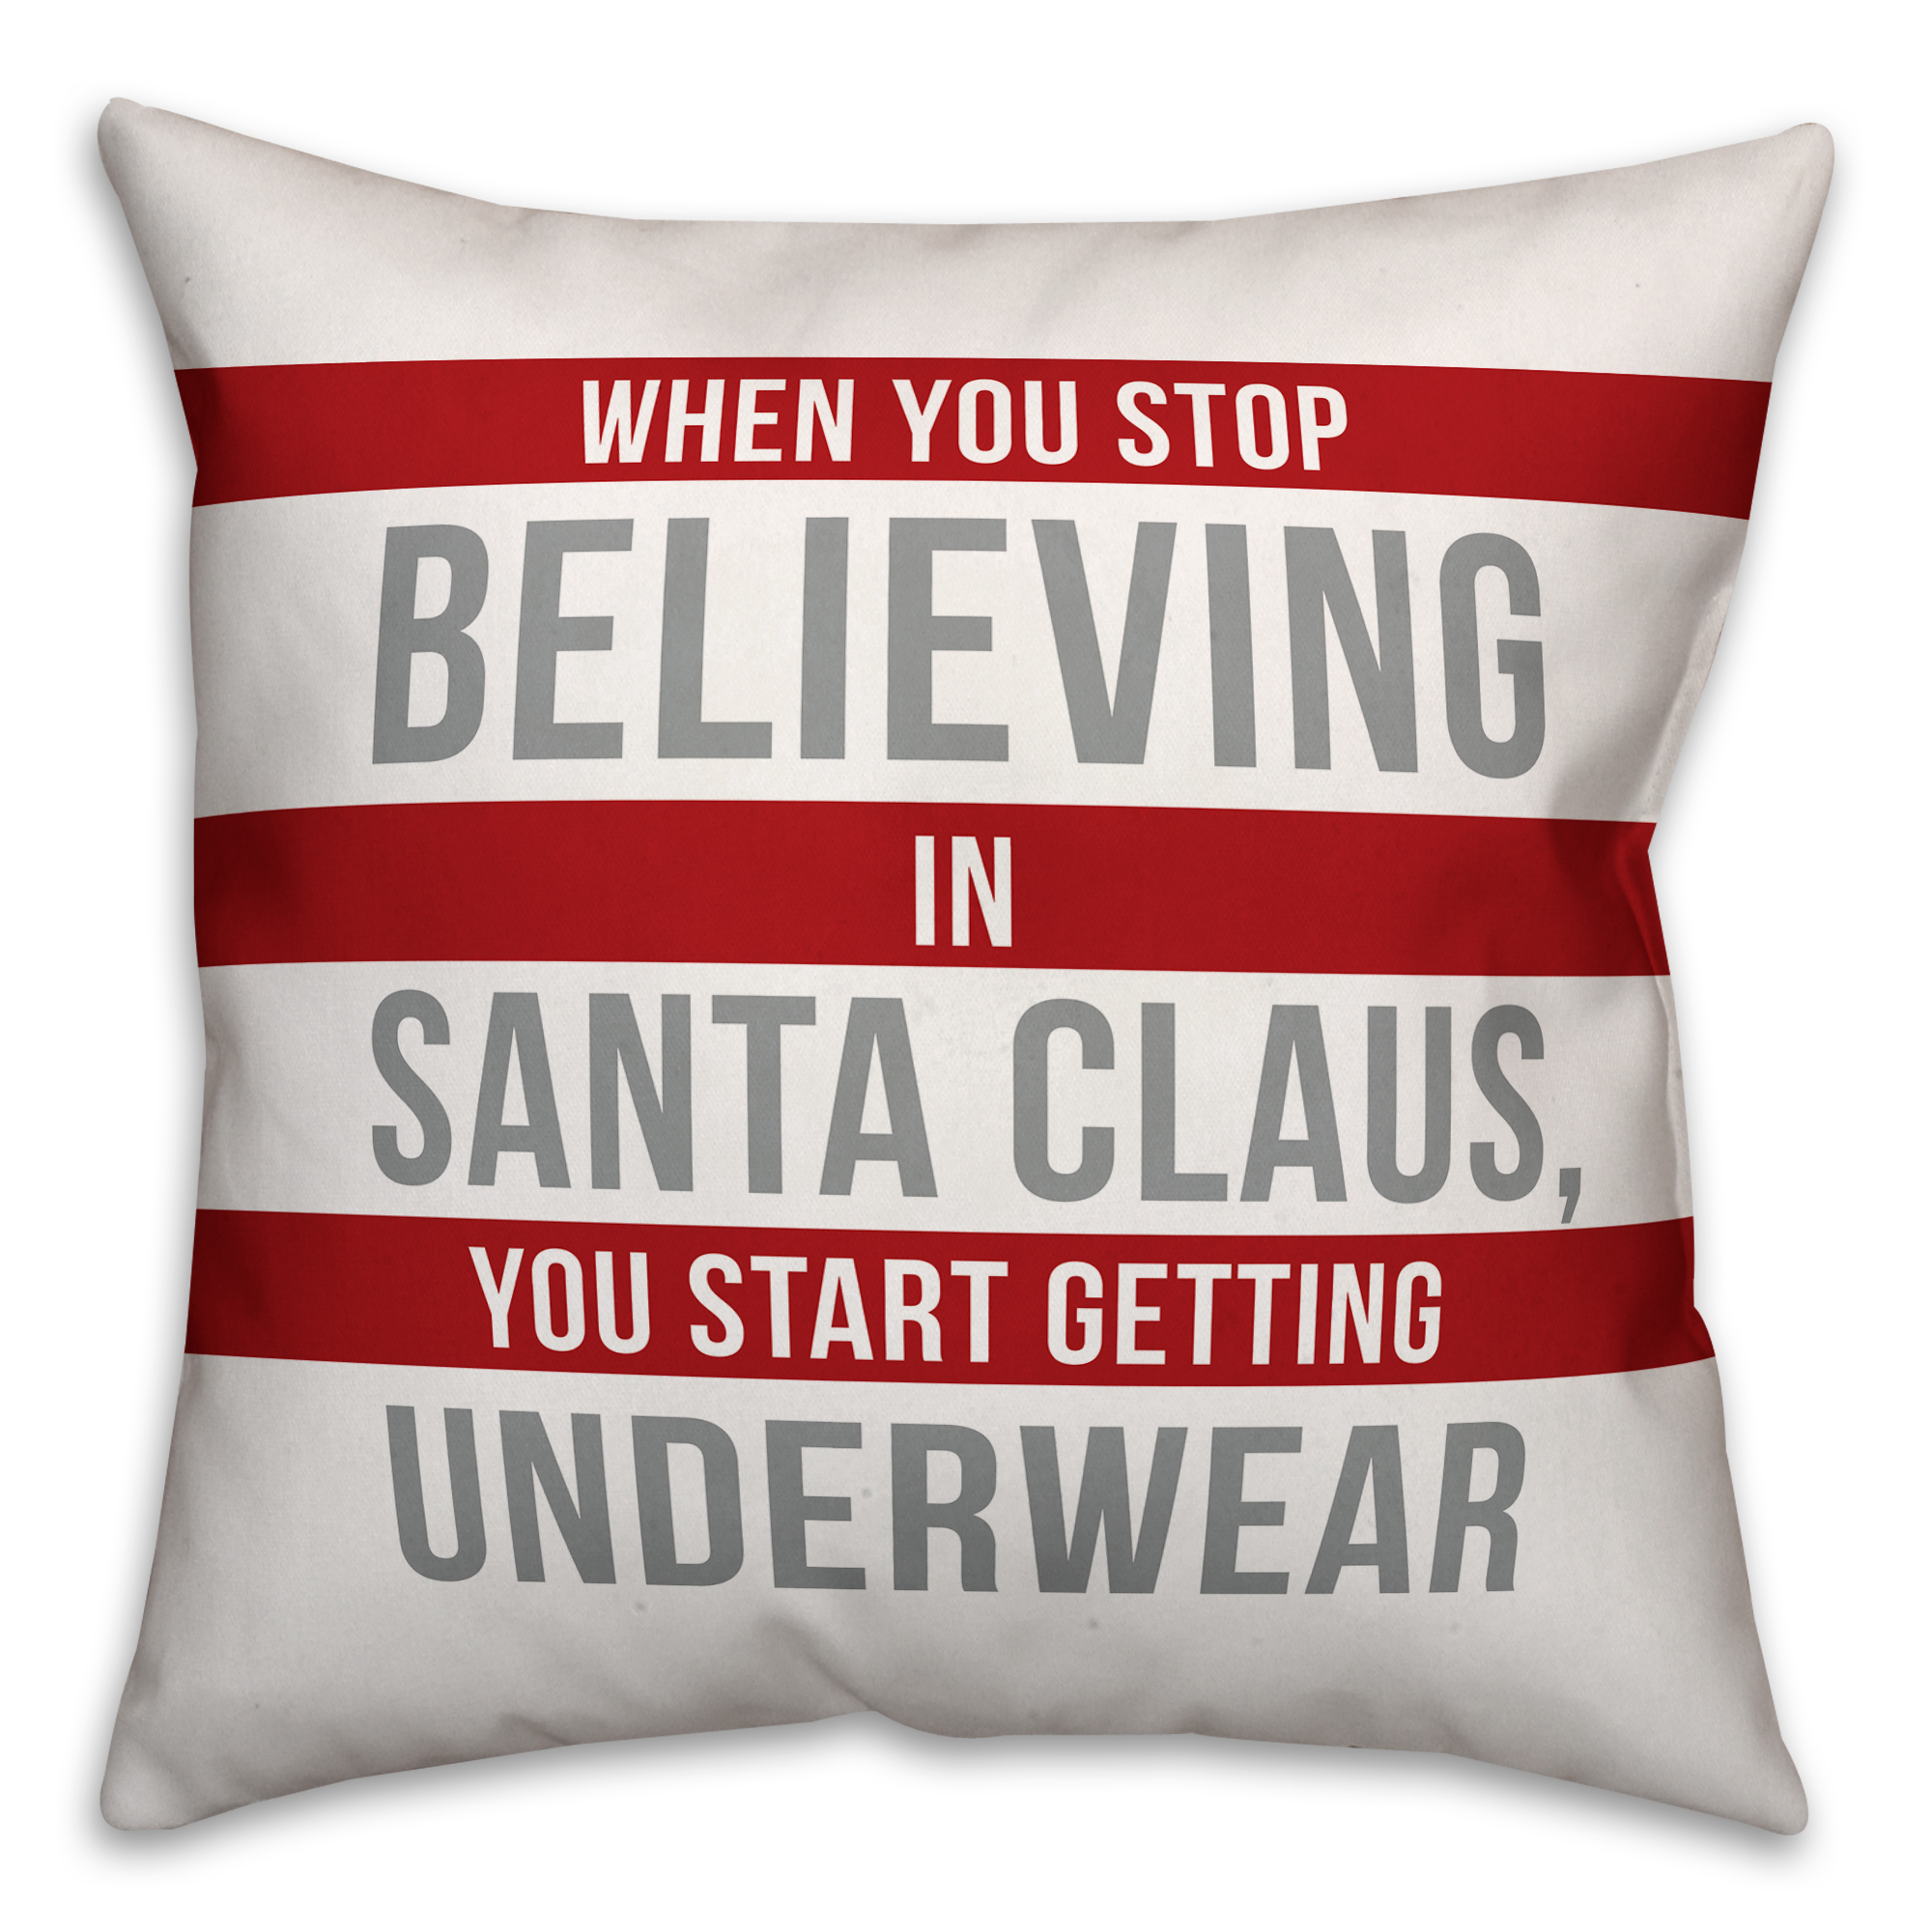 Don't Stop Believing in Santa Claus 16x16 Spun Poly Pillow Cover